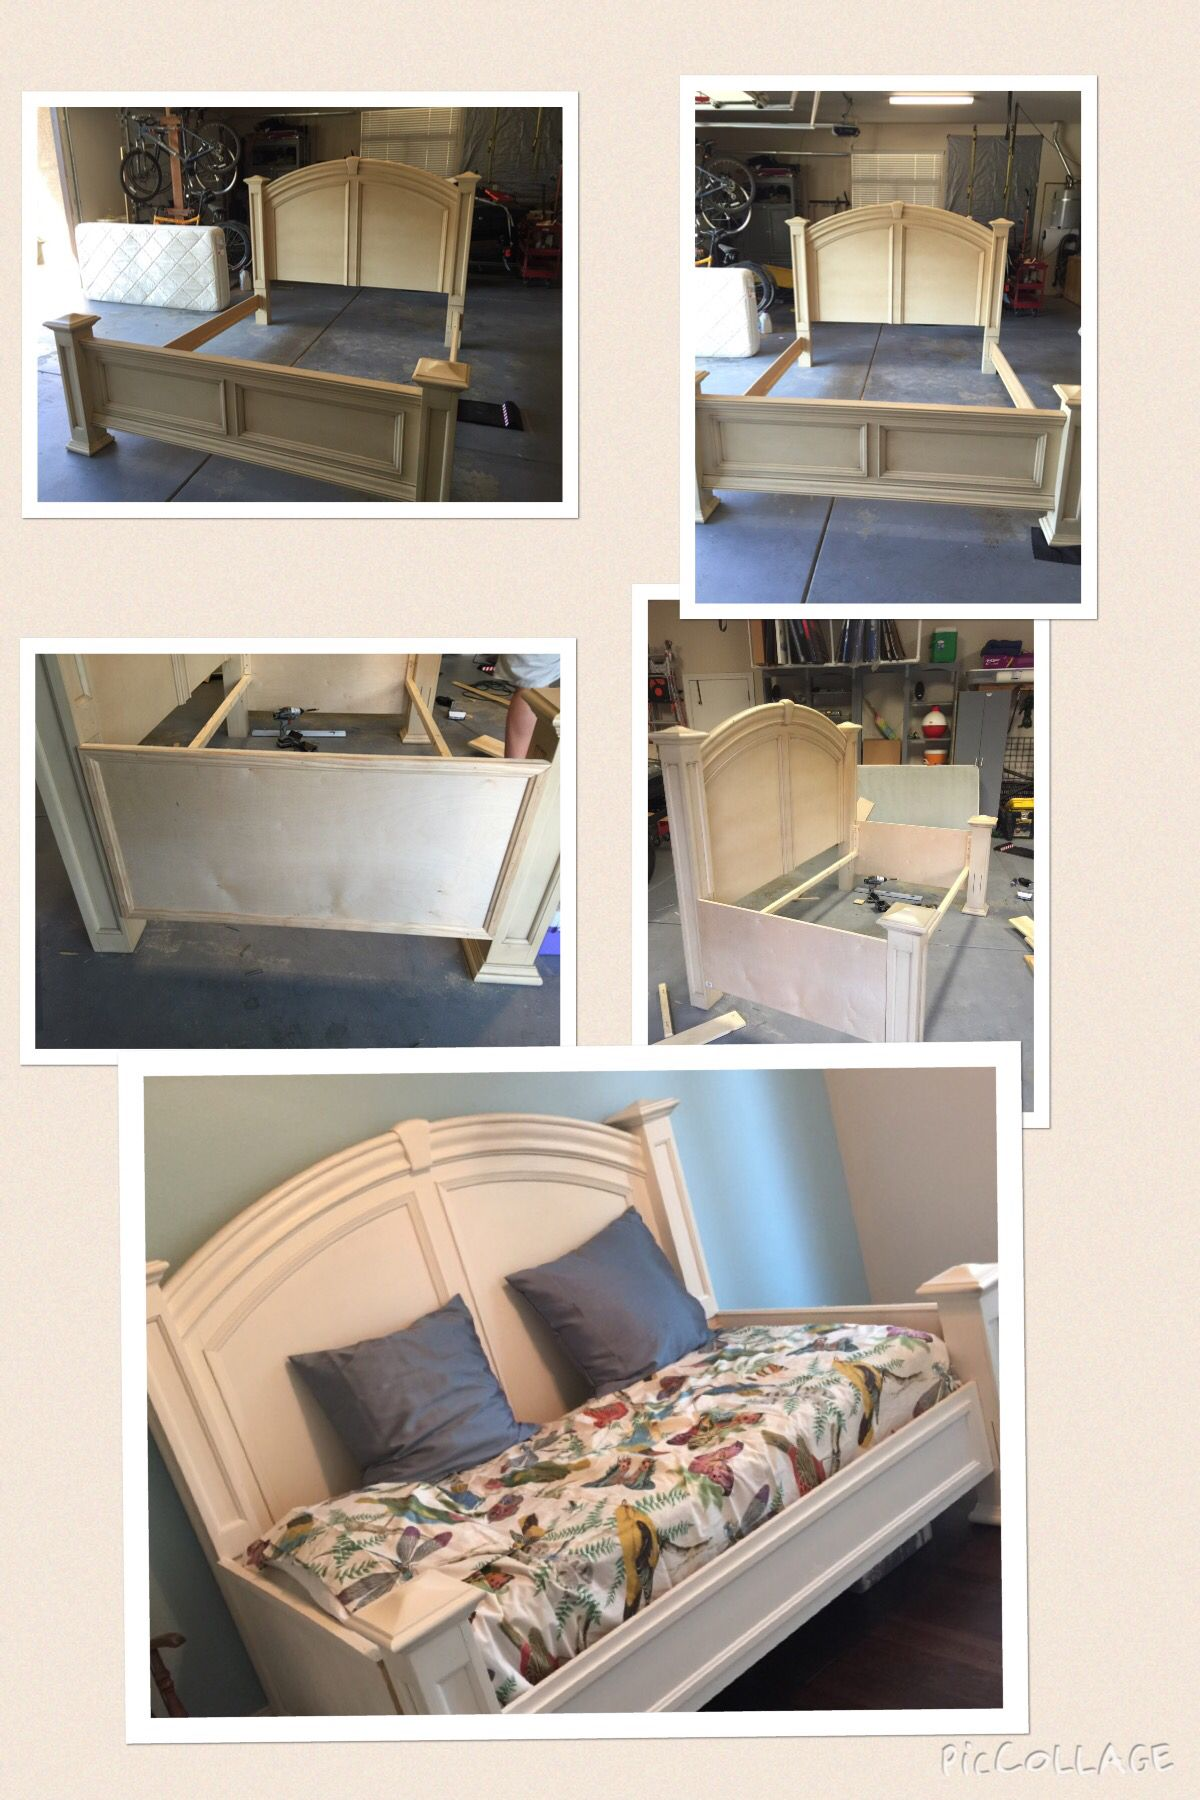 King headboard and footboard rehab to twin daybed. I found a ...